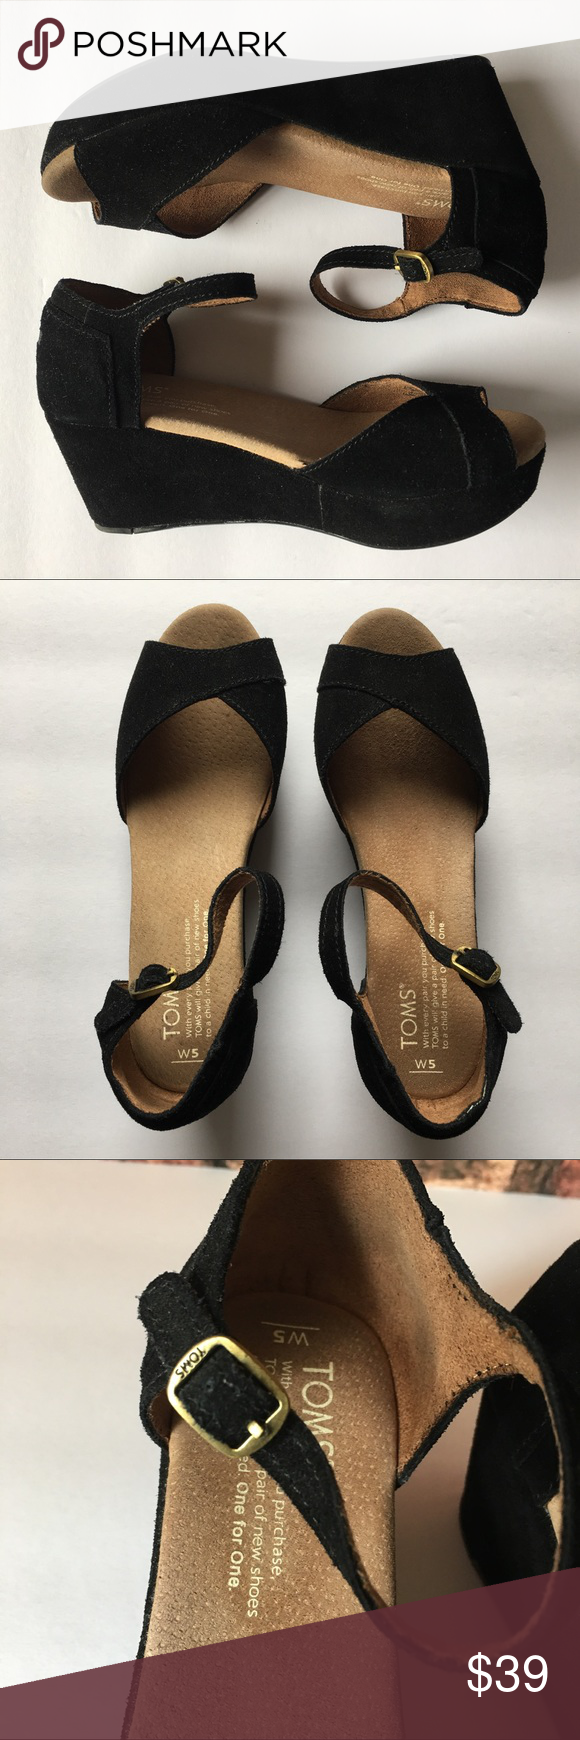 Toms Black Suede Sandal Wedges The perfect black suede wedges to add to your wardrobe. Great for the spring and summer time. In excellent condition. TOMS Shoes Wedges